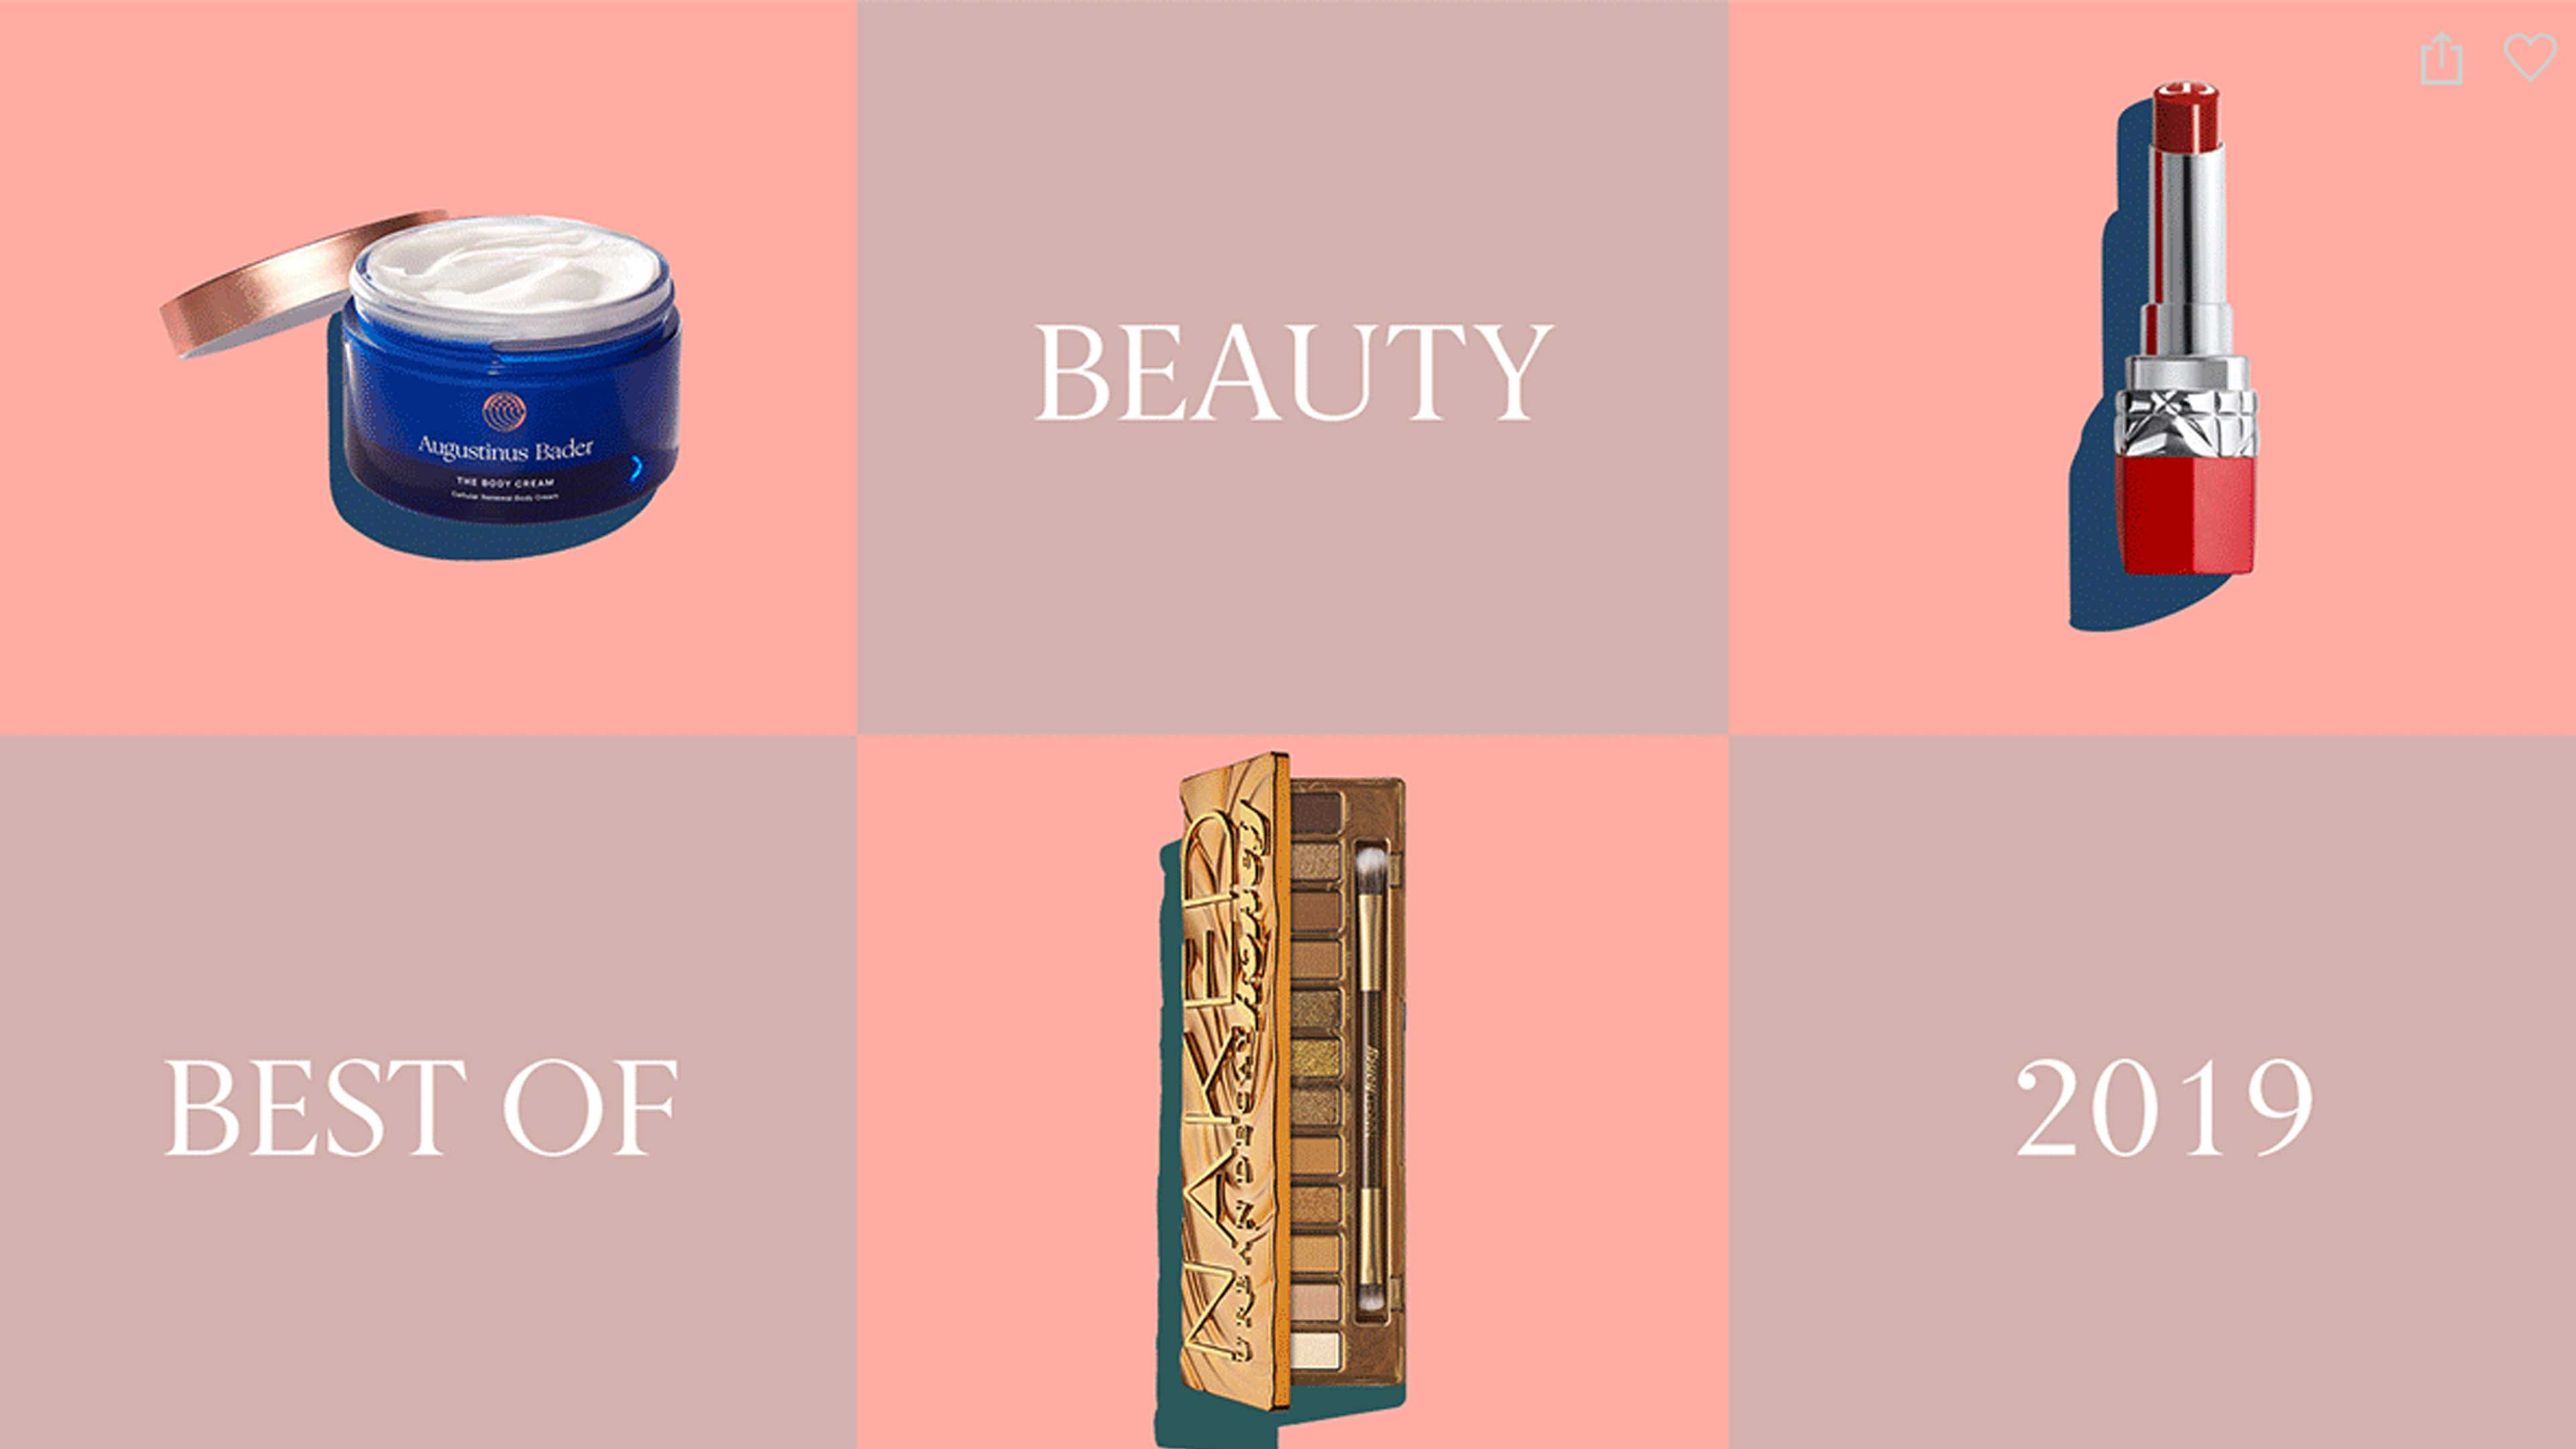 Savior Flair: Best of Beauty 2019